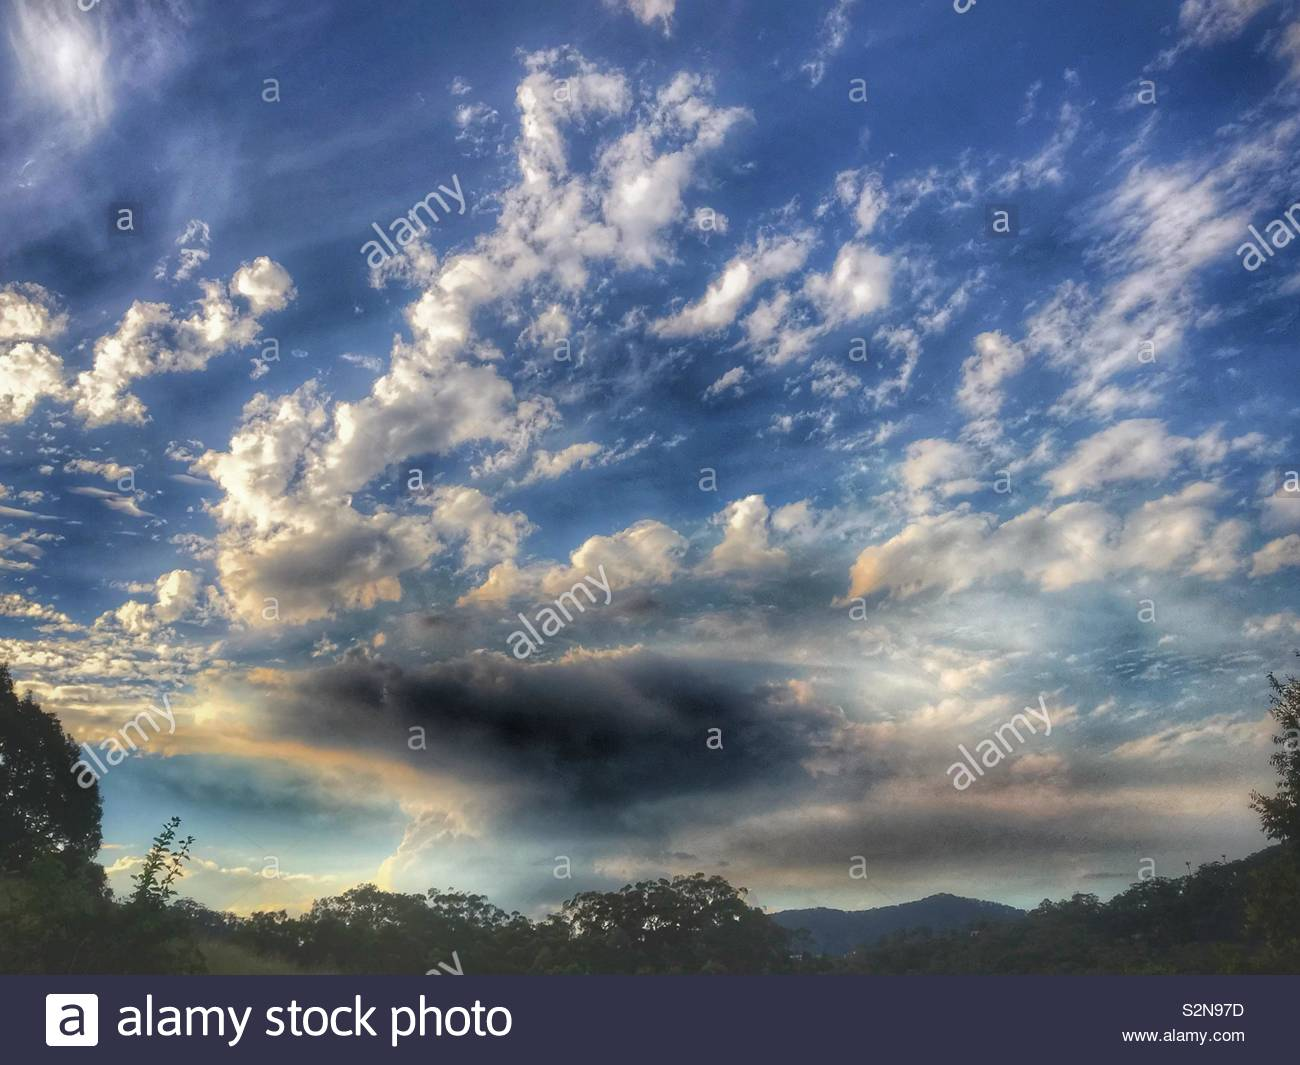 Sunlight shining through Autumn Afternoon cloud cover against blue sky in Australia - Stock Image